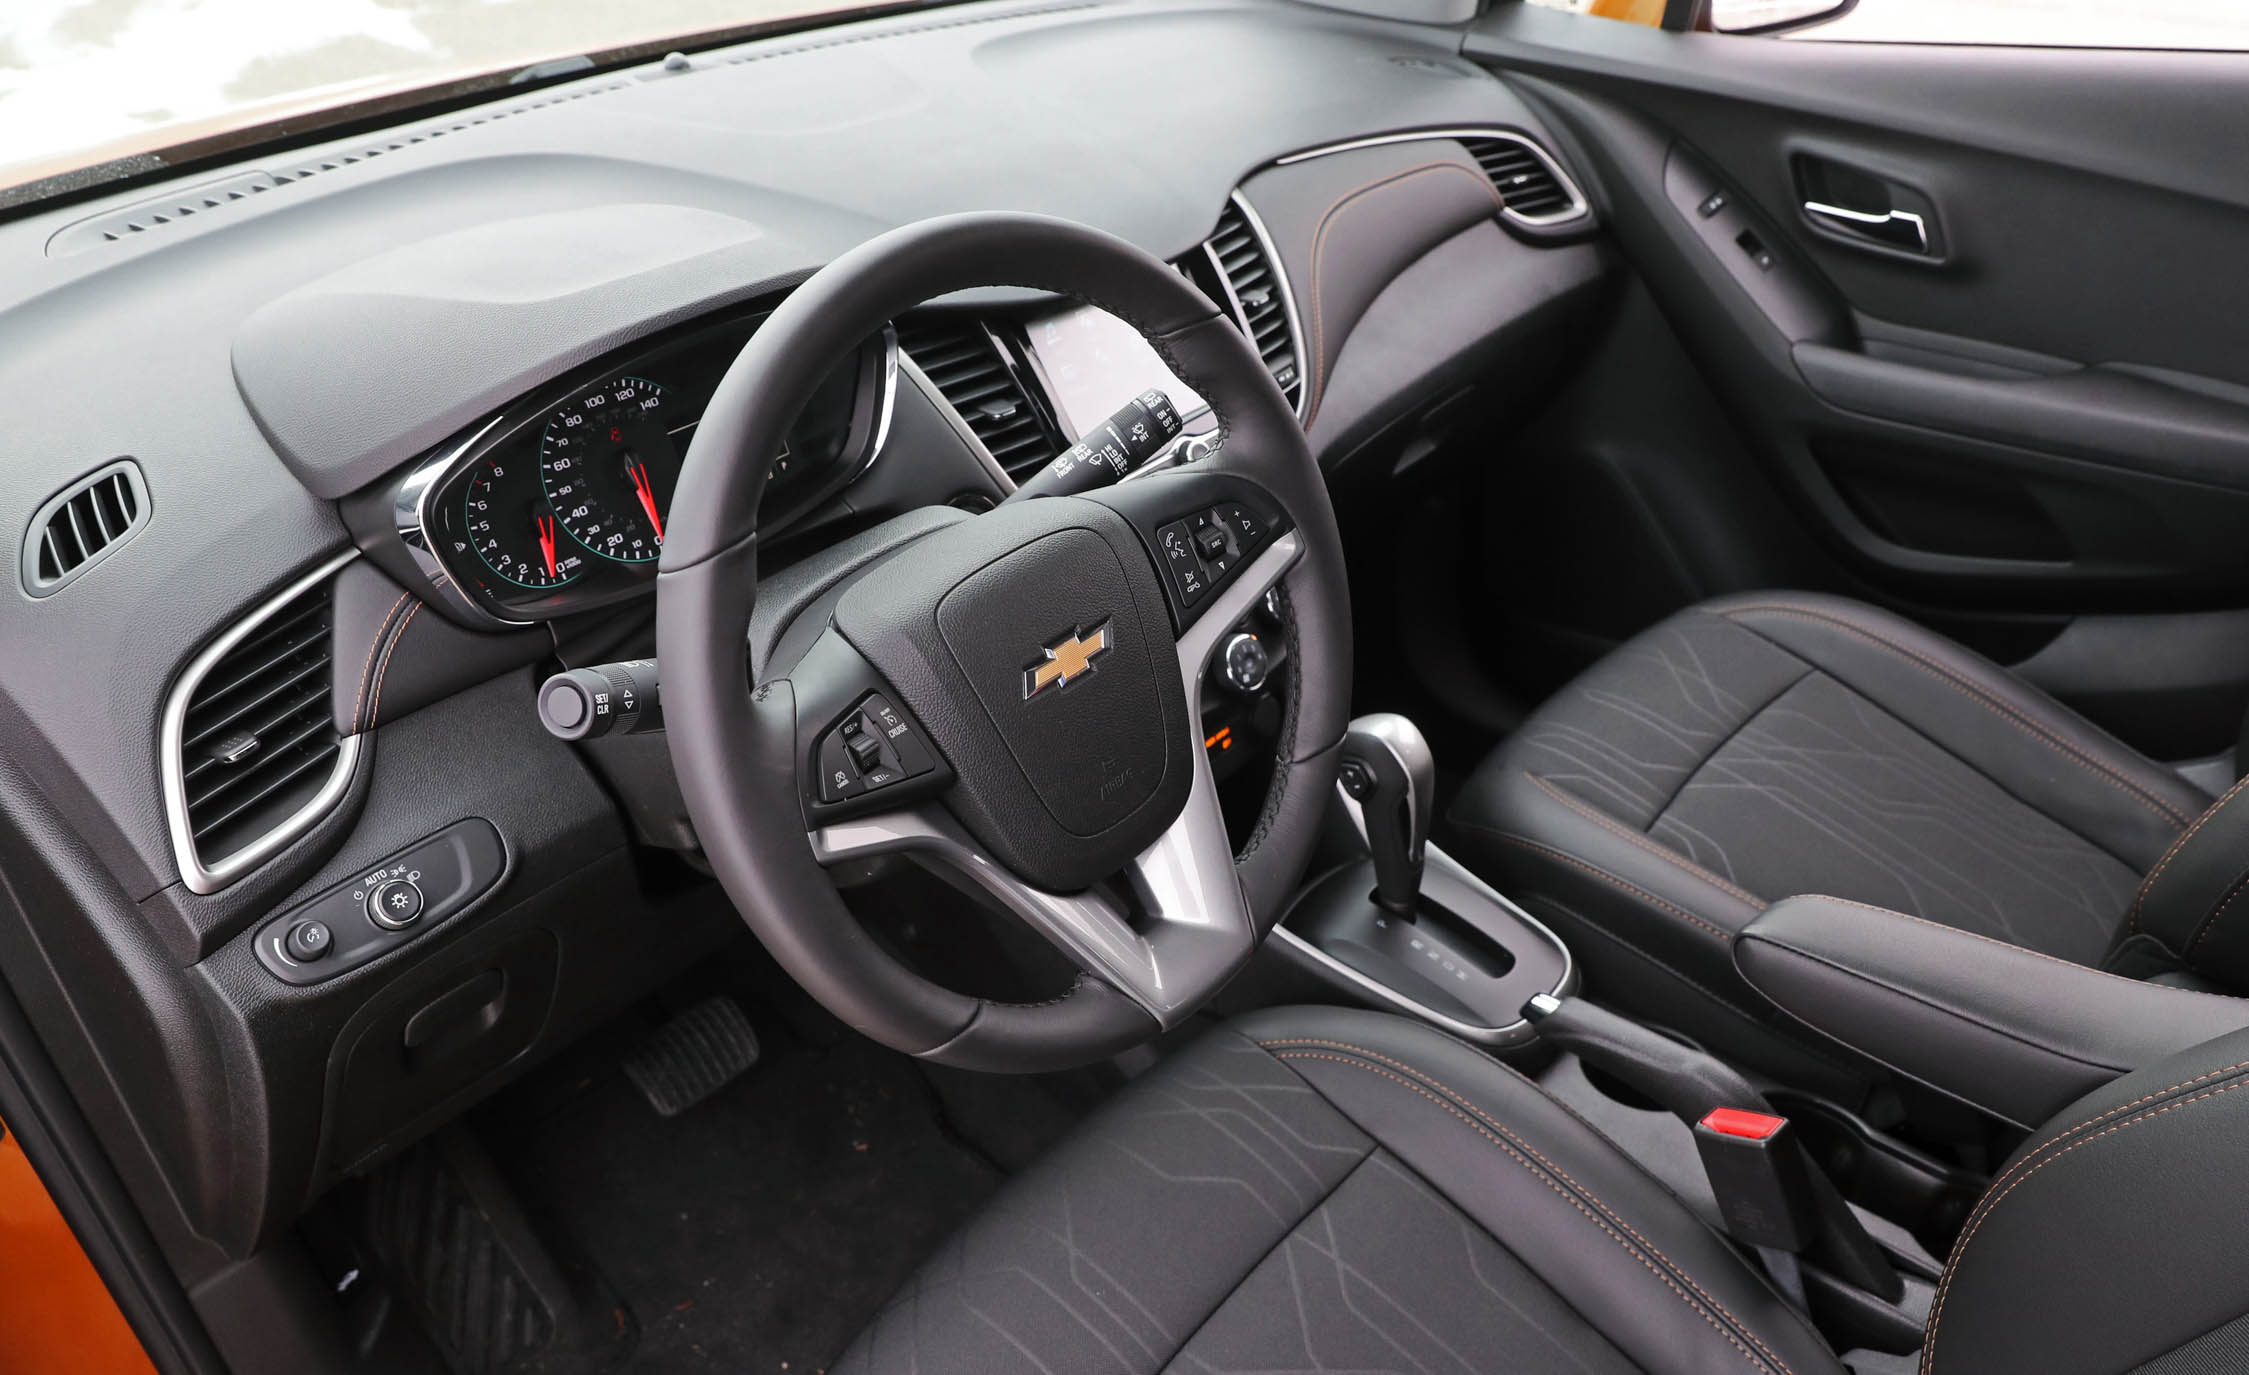 2017 Chevrolet Trax Interior Cockpit Steering (Photo 17 of 47)